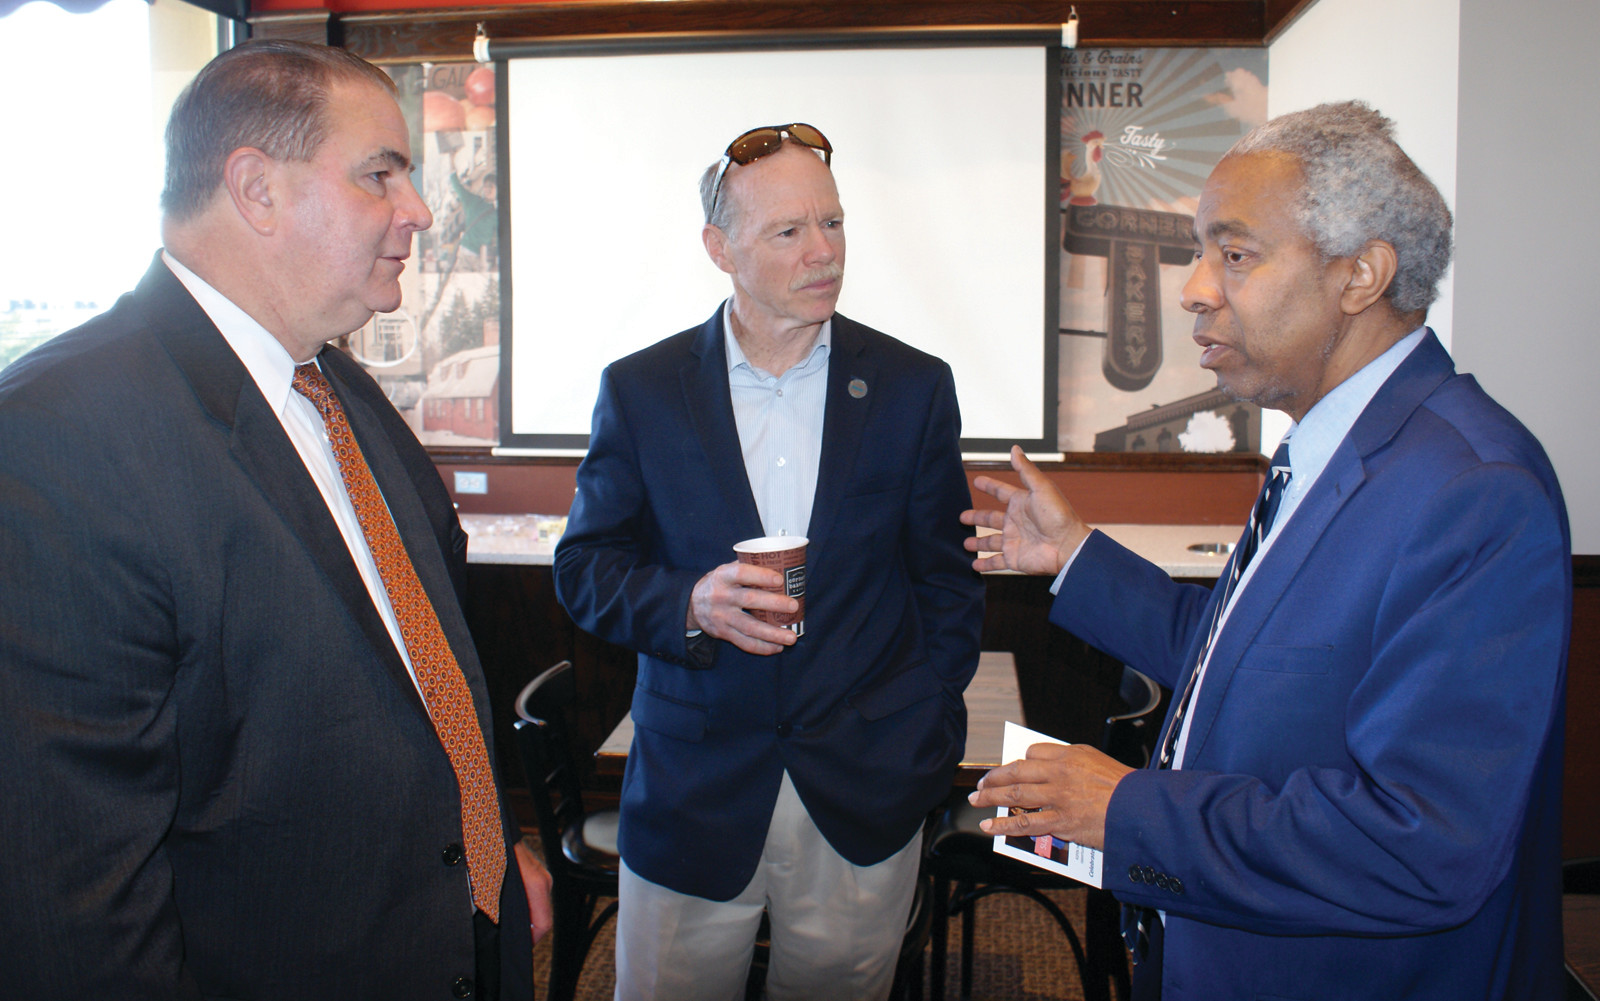 NETWORKING: Pictured are Cranston Chamber President Steve Boyle, Executive Director for RIPIN (Rhode Island Parent Information Network) Stephen Brunero and Executive Director of Stages of Freedom, Ray Rickman at the April 18 Cranston Chamber Coffee Connections at the Corner Bakery.